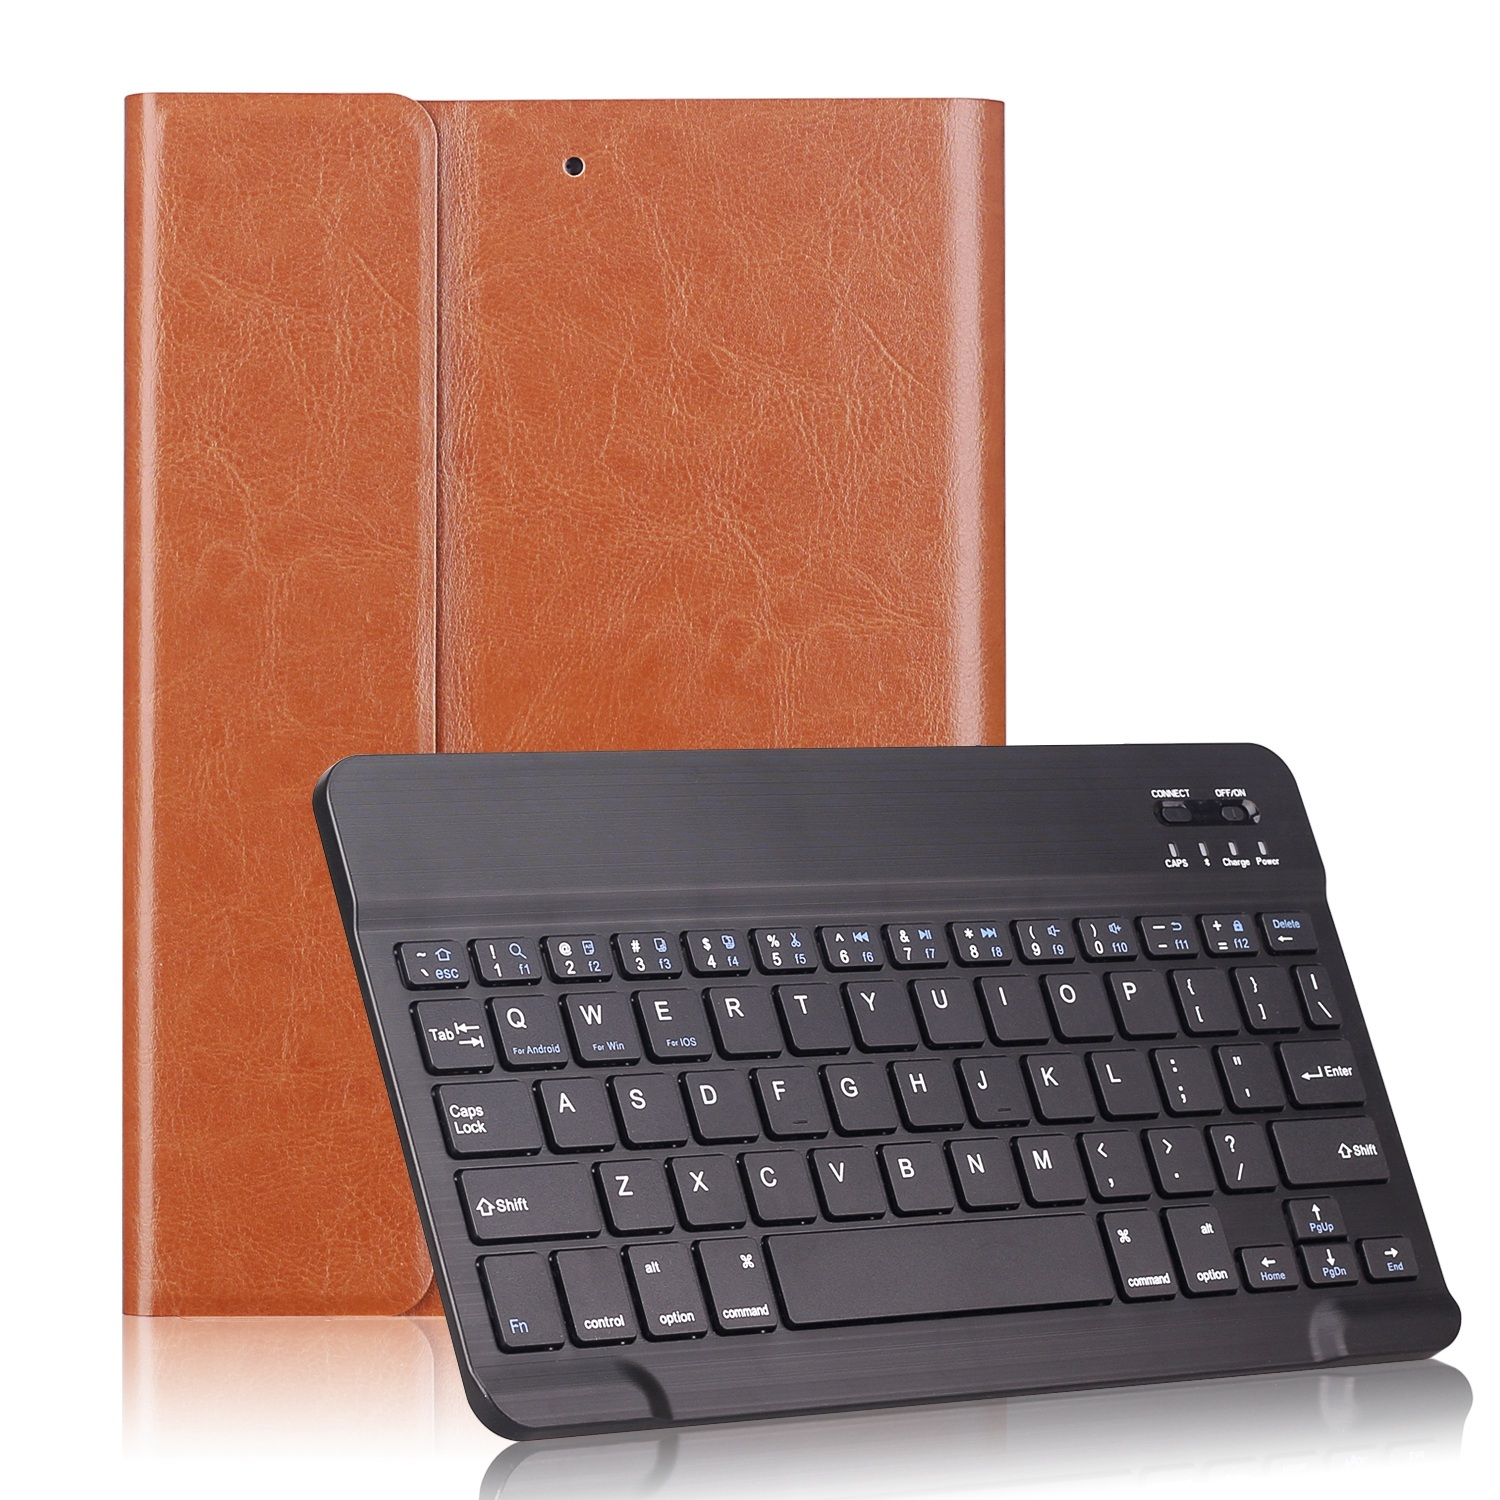 Tablet Accessories Audacious Pu Leather Keyboard Case For Ipad 9.7 2018 2017 Ipad Air 2 1 Silicone Soft Cover Multiple Folio Stand For Ipad 2018 Case 9.7 Fragrant Aroma Computer & Office